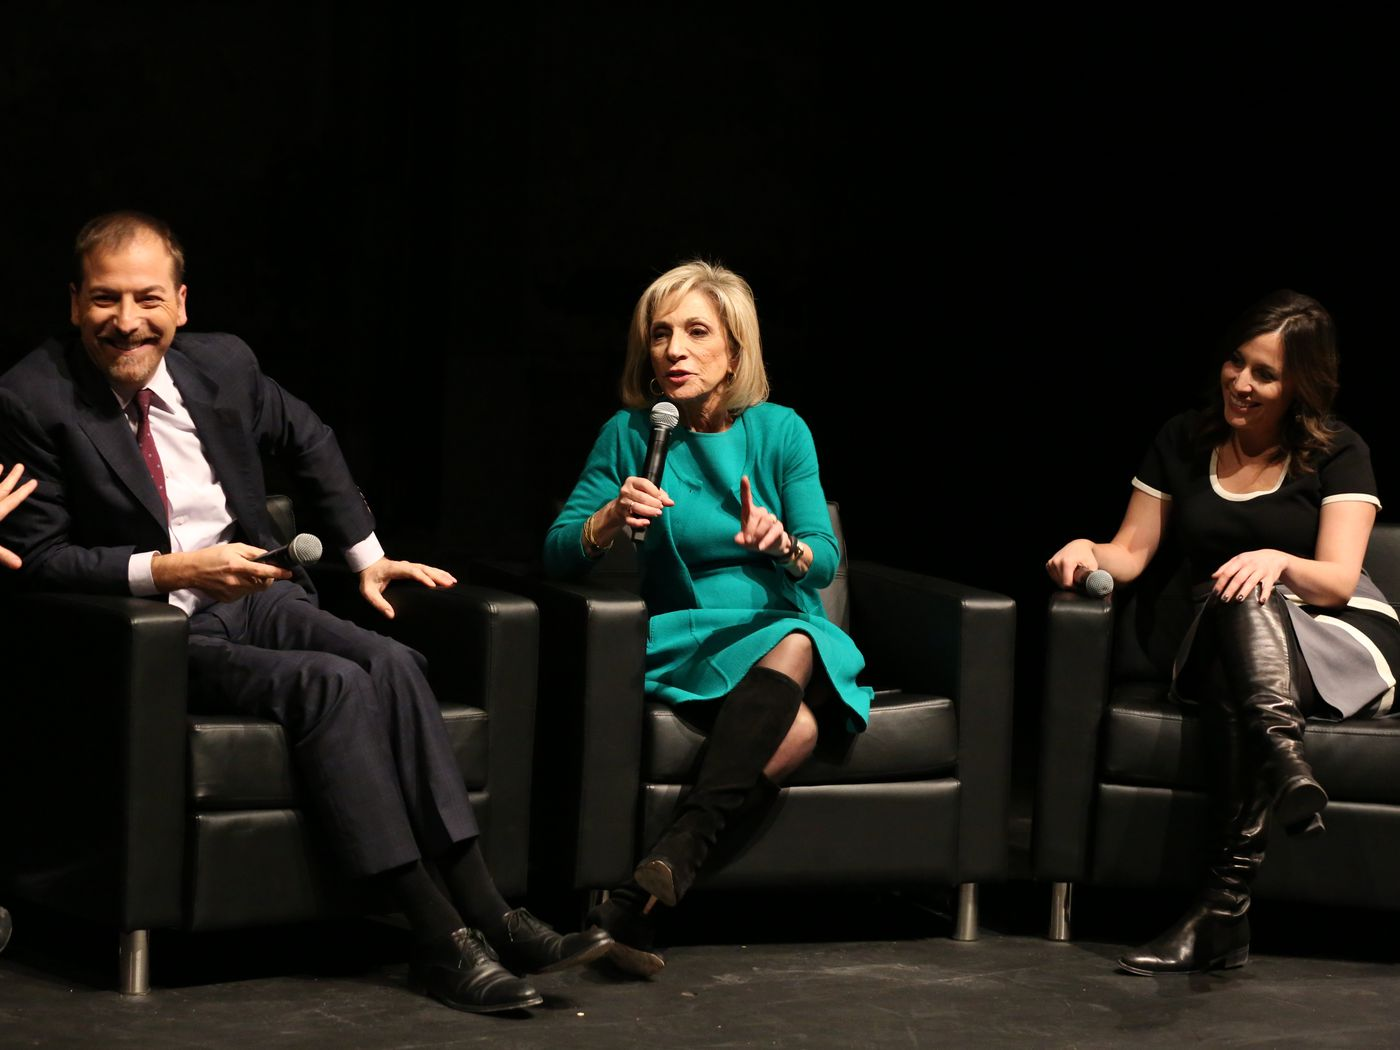 Full Q&A: NBC journalists Chuck Todd, Andrea Mitchell and Hallie